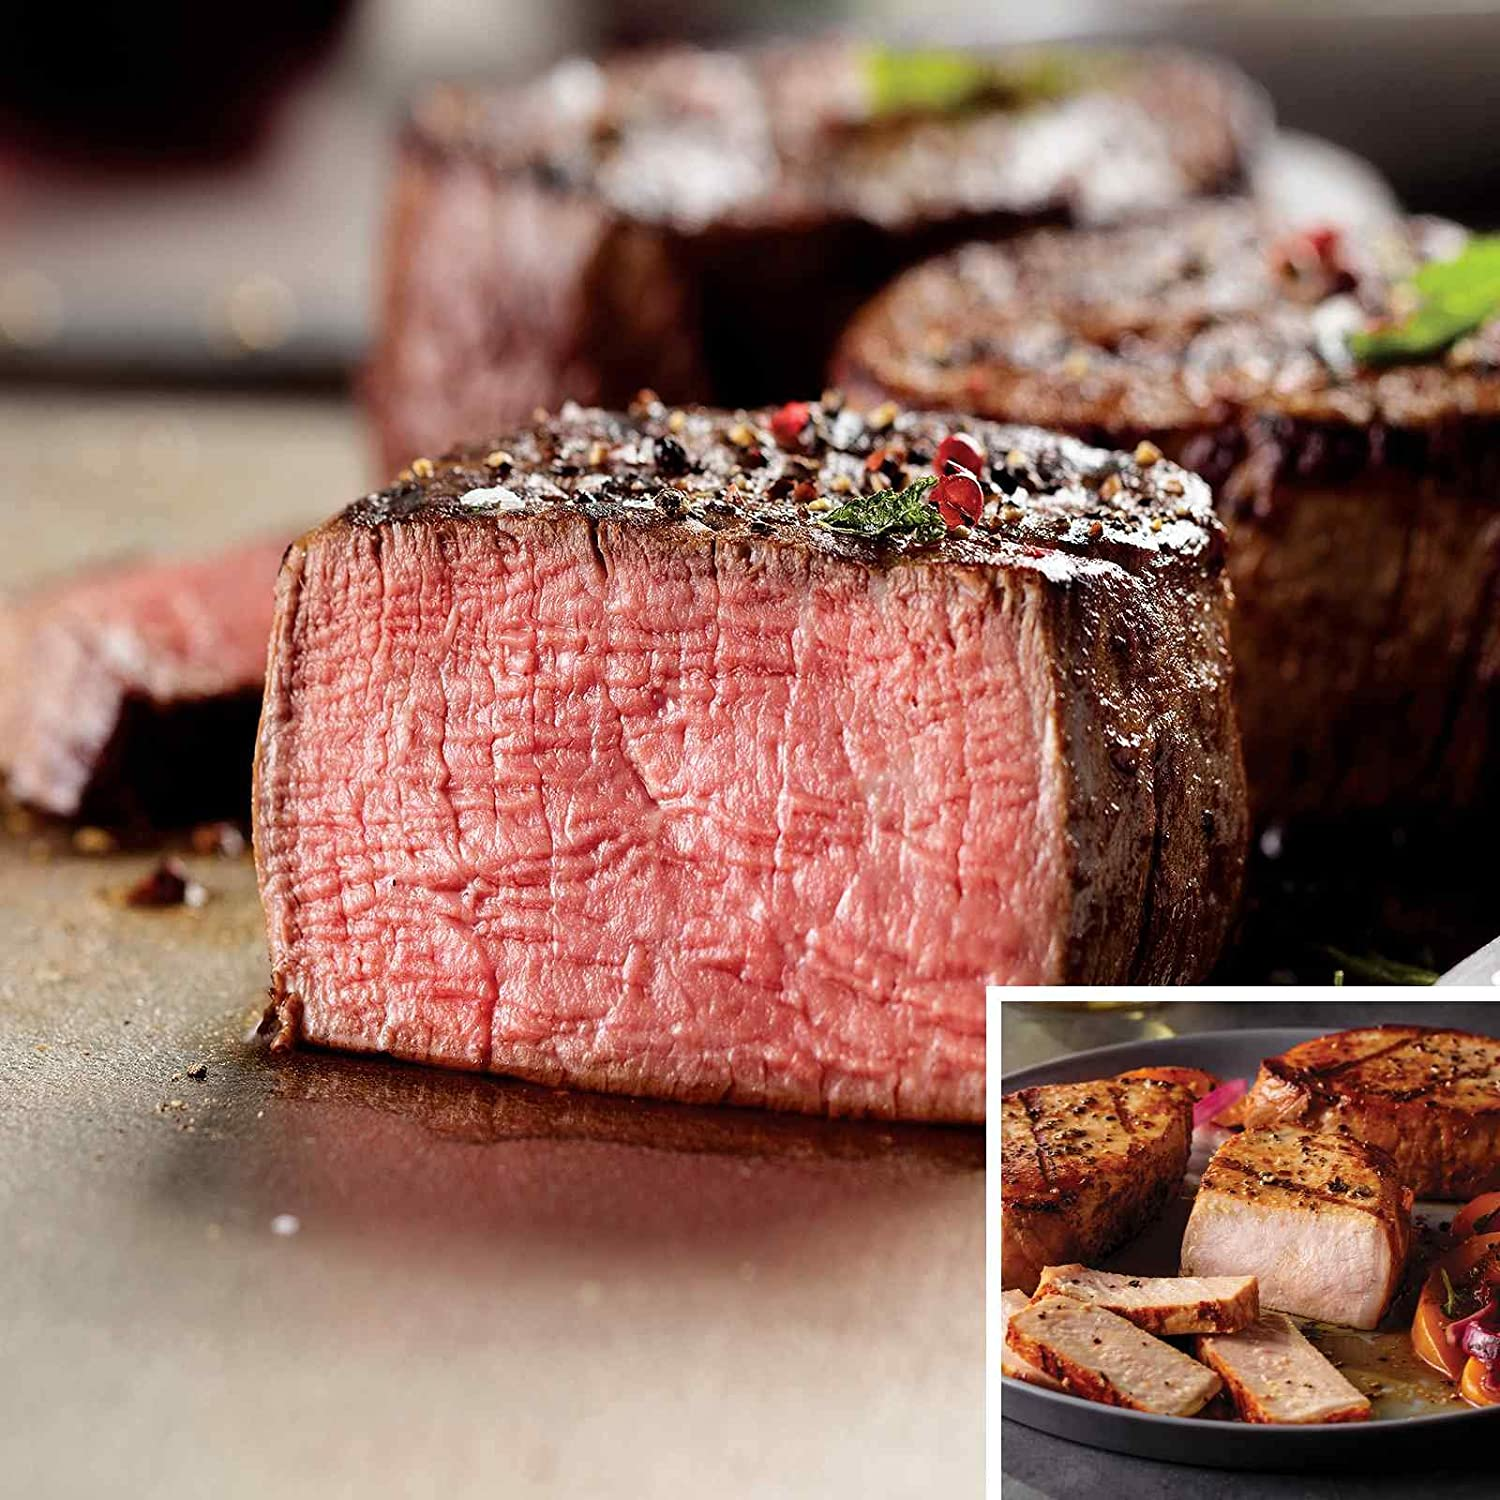 Filet Mignons and Pork Chops